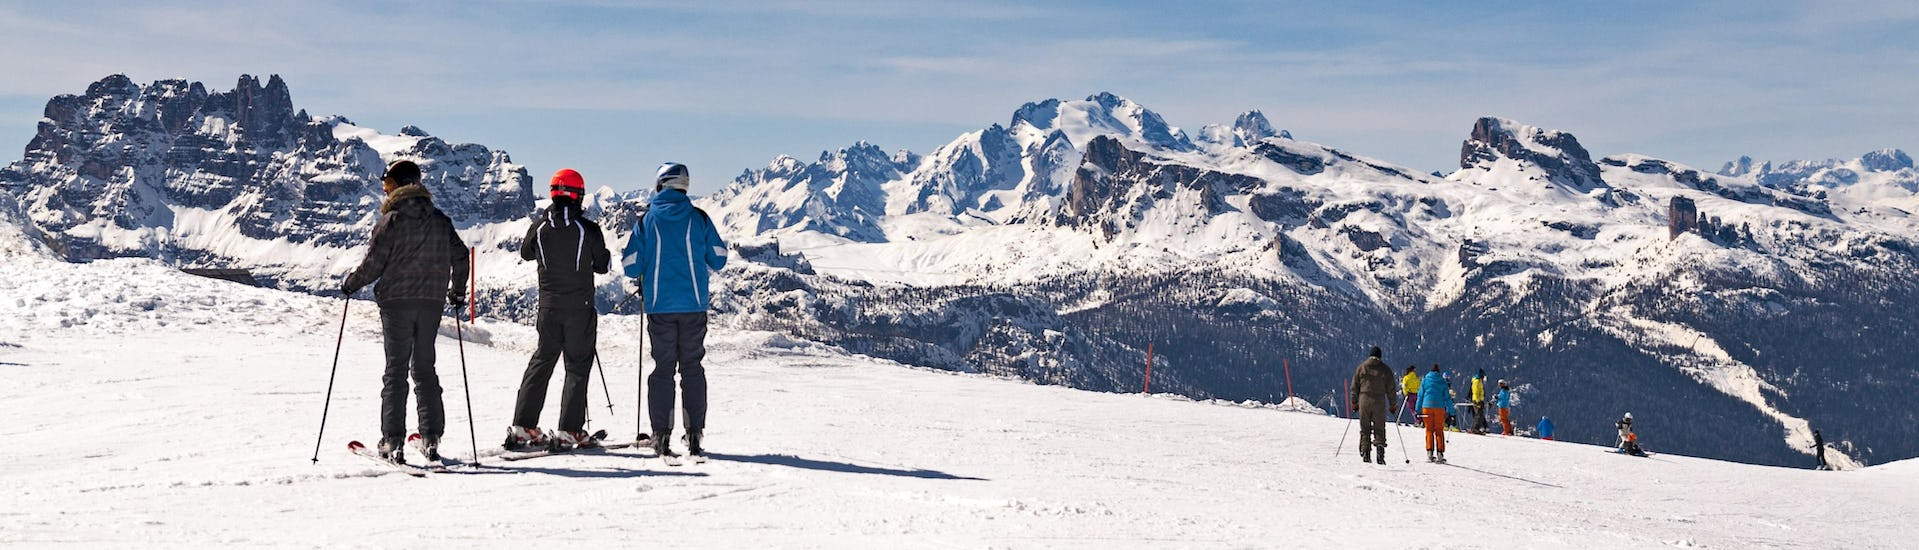 Scenic view of the Dolomites with skiers taking part in ski lessons from ski schools in the ski area Cortina d'Ampezzo.